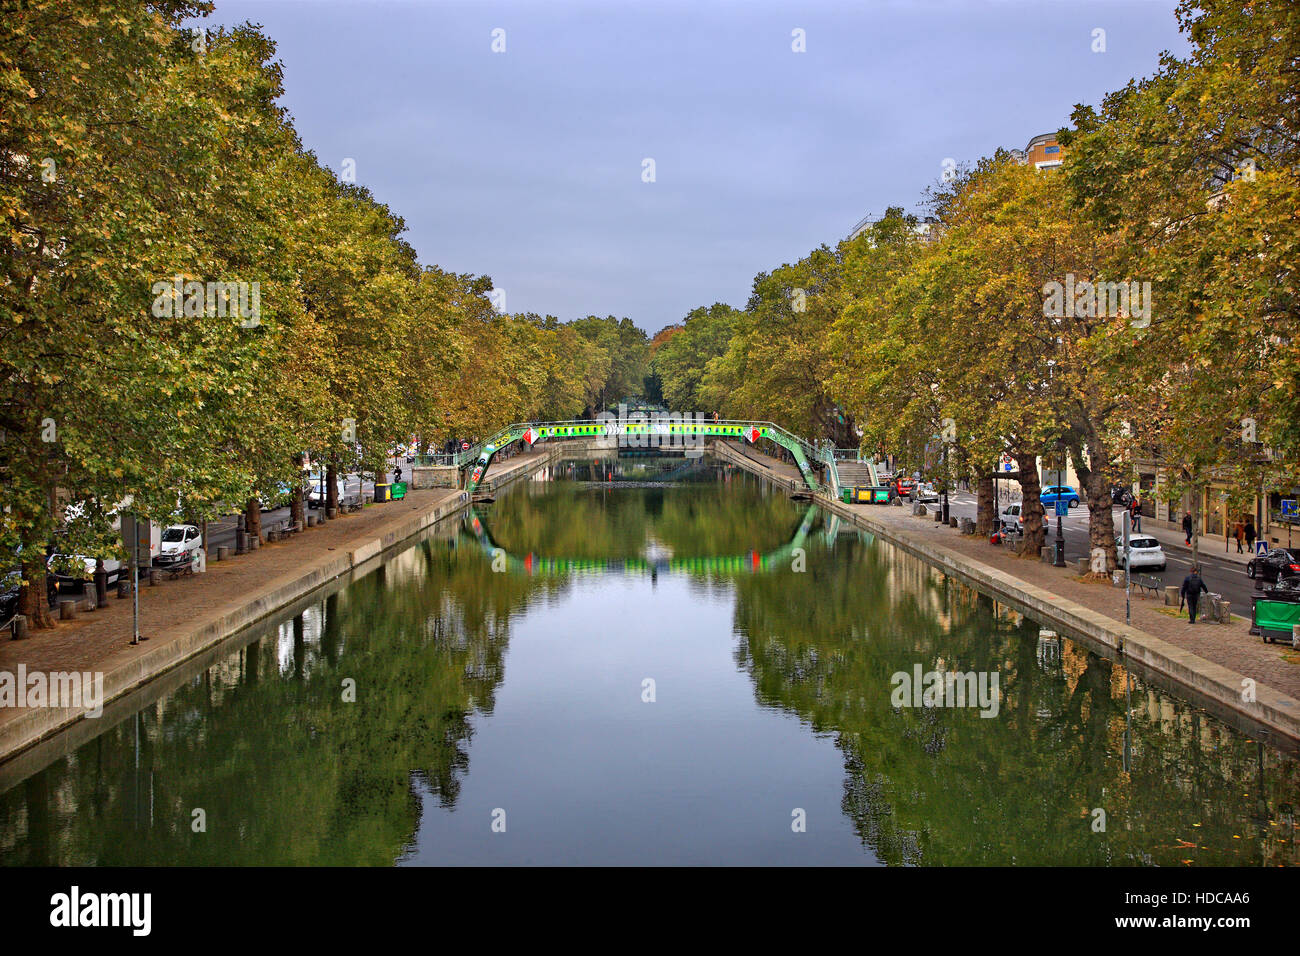 At the canal Saint-Martin, Paris, France - Stock Image